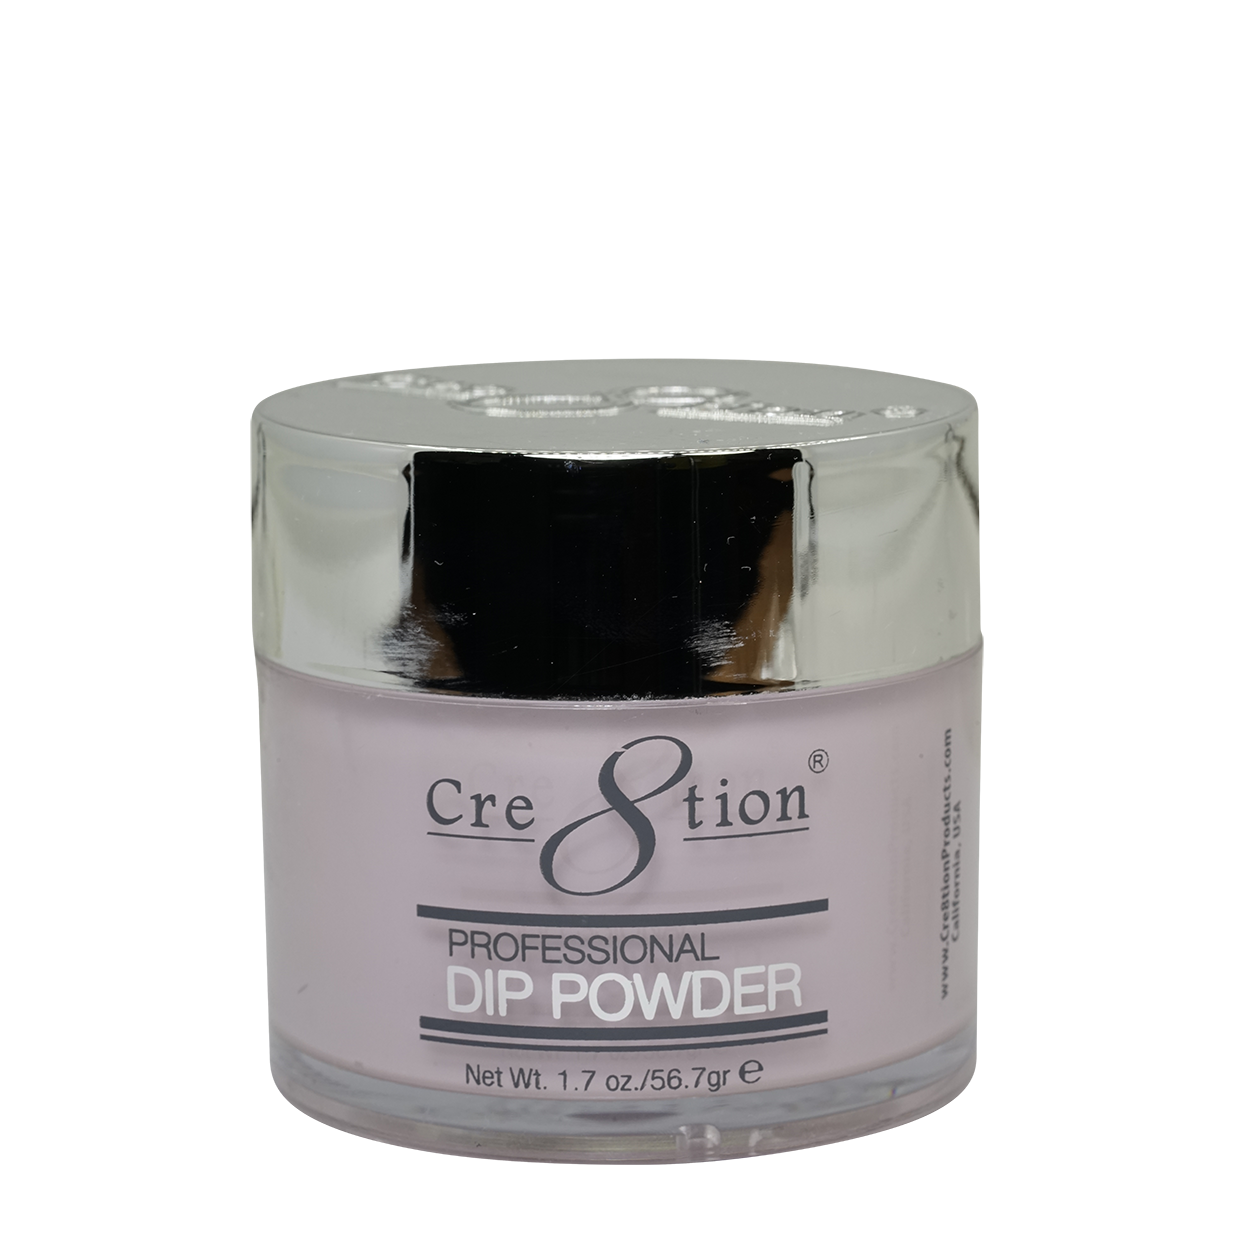 Cre8tion Matching Dip Powder 1.7oz 59 UNDERNEATH IT ALL